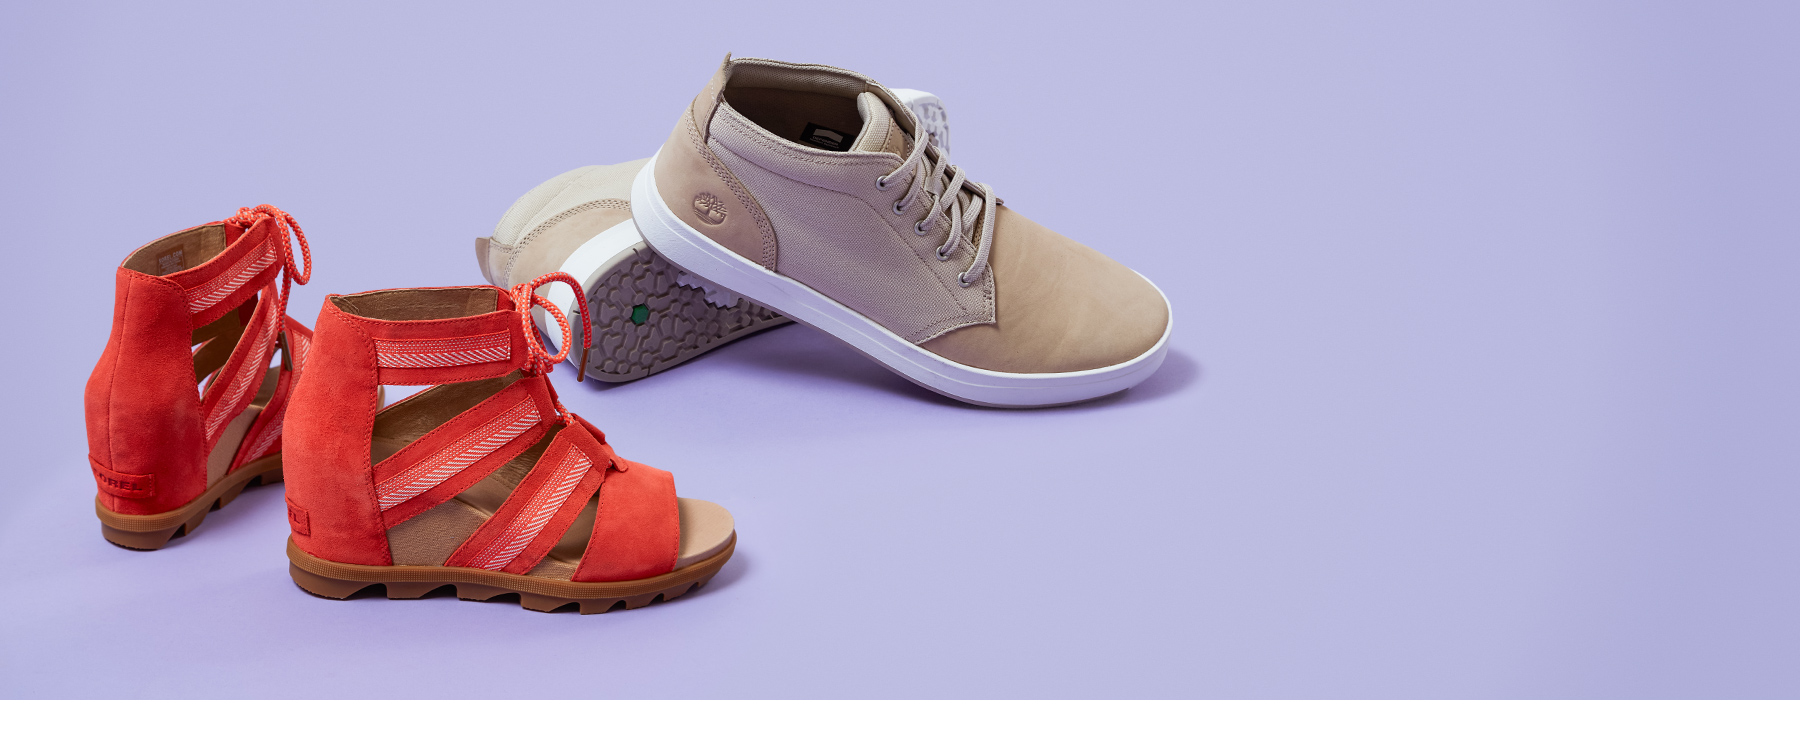 Women's red Sorel wedges and a men's cream Timberland shoe.